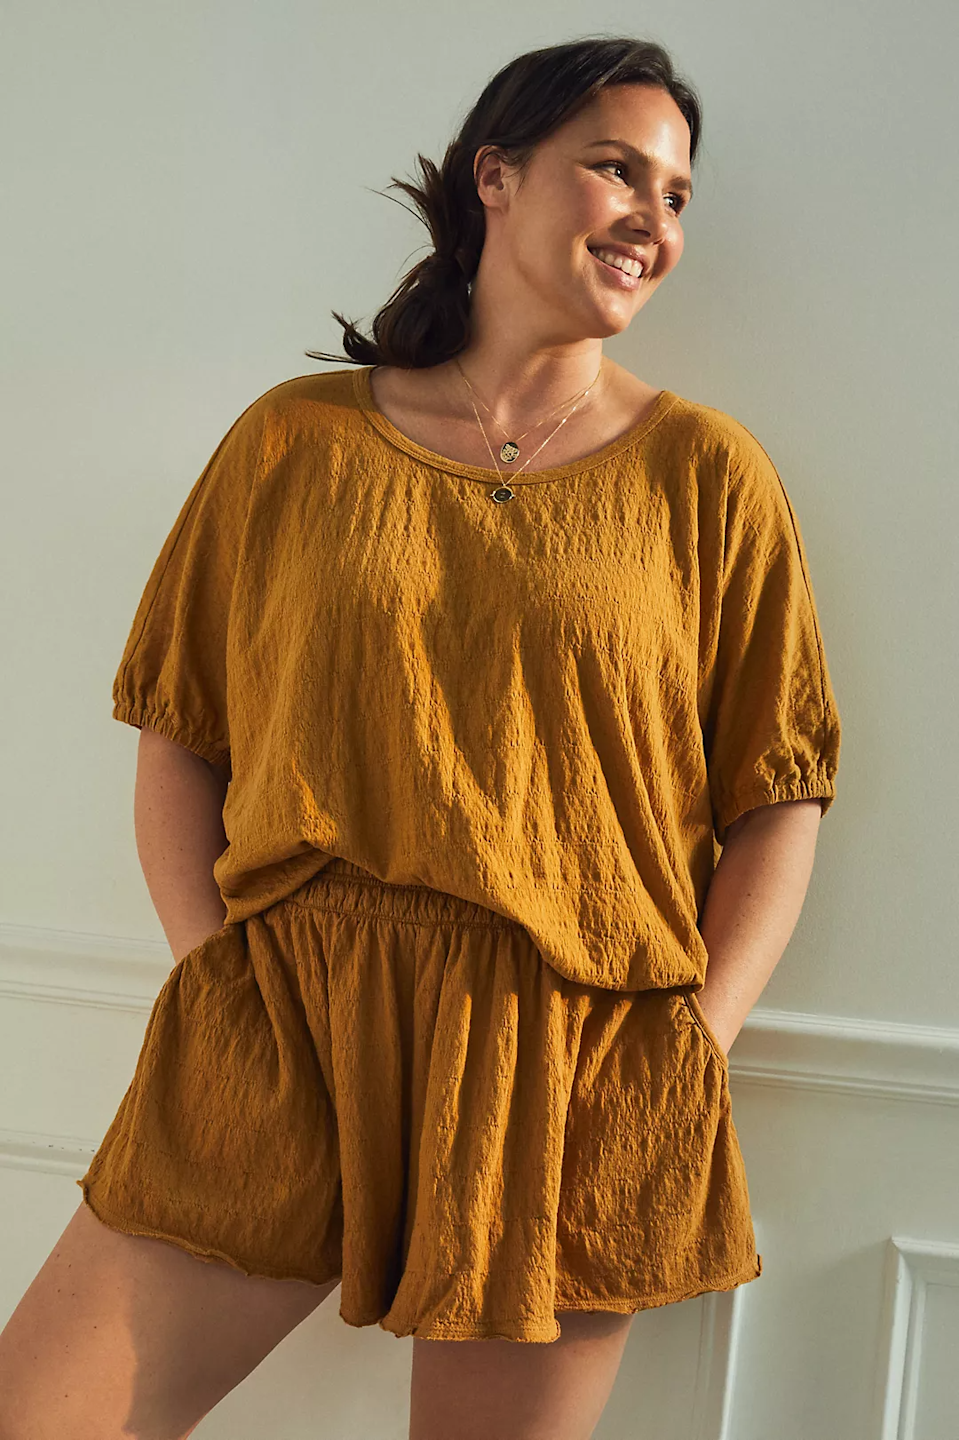 """<h2>Daily Practice by Anthropologie Kimberly Shorts</h2><br><strong>Size Range: 1X-3X</strong><br><br><em>Shop <strong><a href=""""https://www.anthropologie.com/shop/daily-practice-by-anthropologie-kimberly-shorts"""" rel=""""nofollow noopener"""" target=""""_blank"""" data-ylk=""""slk:Anthropologie"""" class=""""link rapid-noclick-resp"""">Anthropologie</a></strong></em><br><br><strong>Daily Practice by Anthropologie</strong> Daily Practice by Anthropologie Kimberly Shorts, $, available at <a href=""""https://go.skimresources.com/?id=30283X879131&url=https%3A%2F%2Fwww.anthropologie.com%2Fshop%2Fdaily-practice-by-anthropologie-kimberly-shorts"""" rel=""""nofollow noopener"""" target=""""_blank"""" data-ylk=""""slk:Anthropologie"""" class=""""link rapid-noclick-resp"""">Anthropologie</a>"""